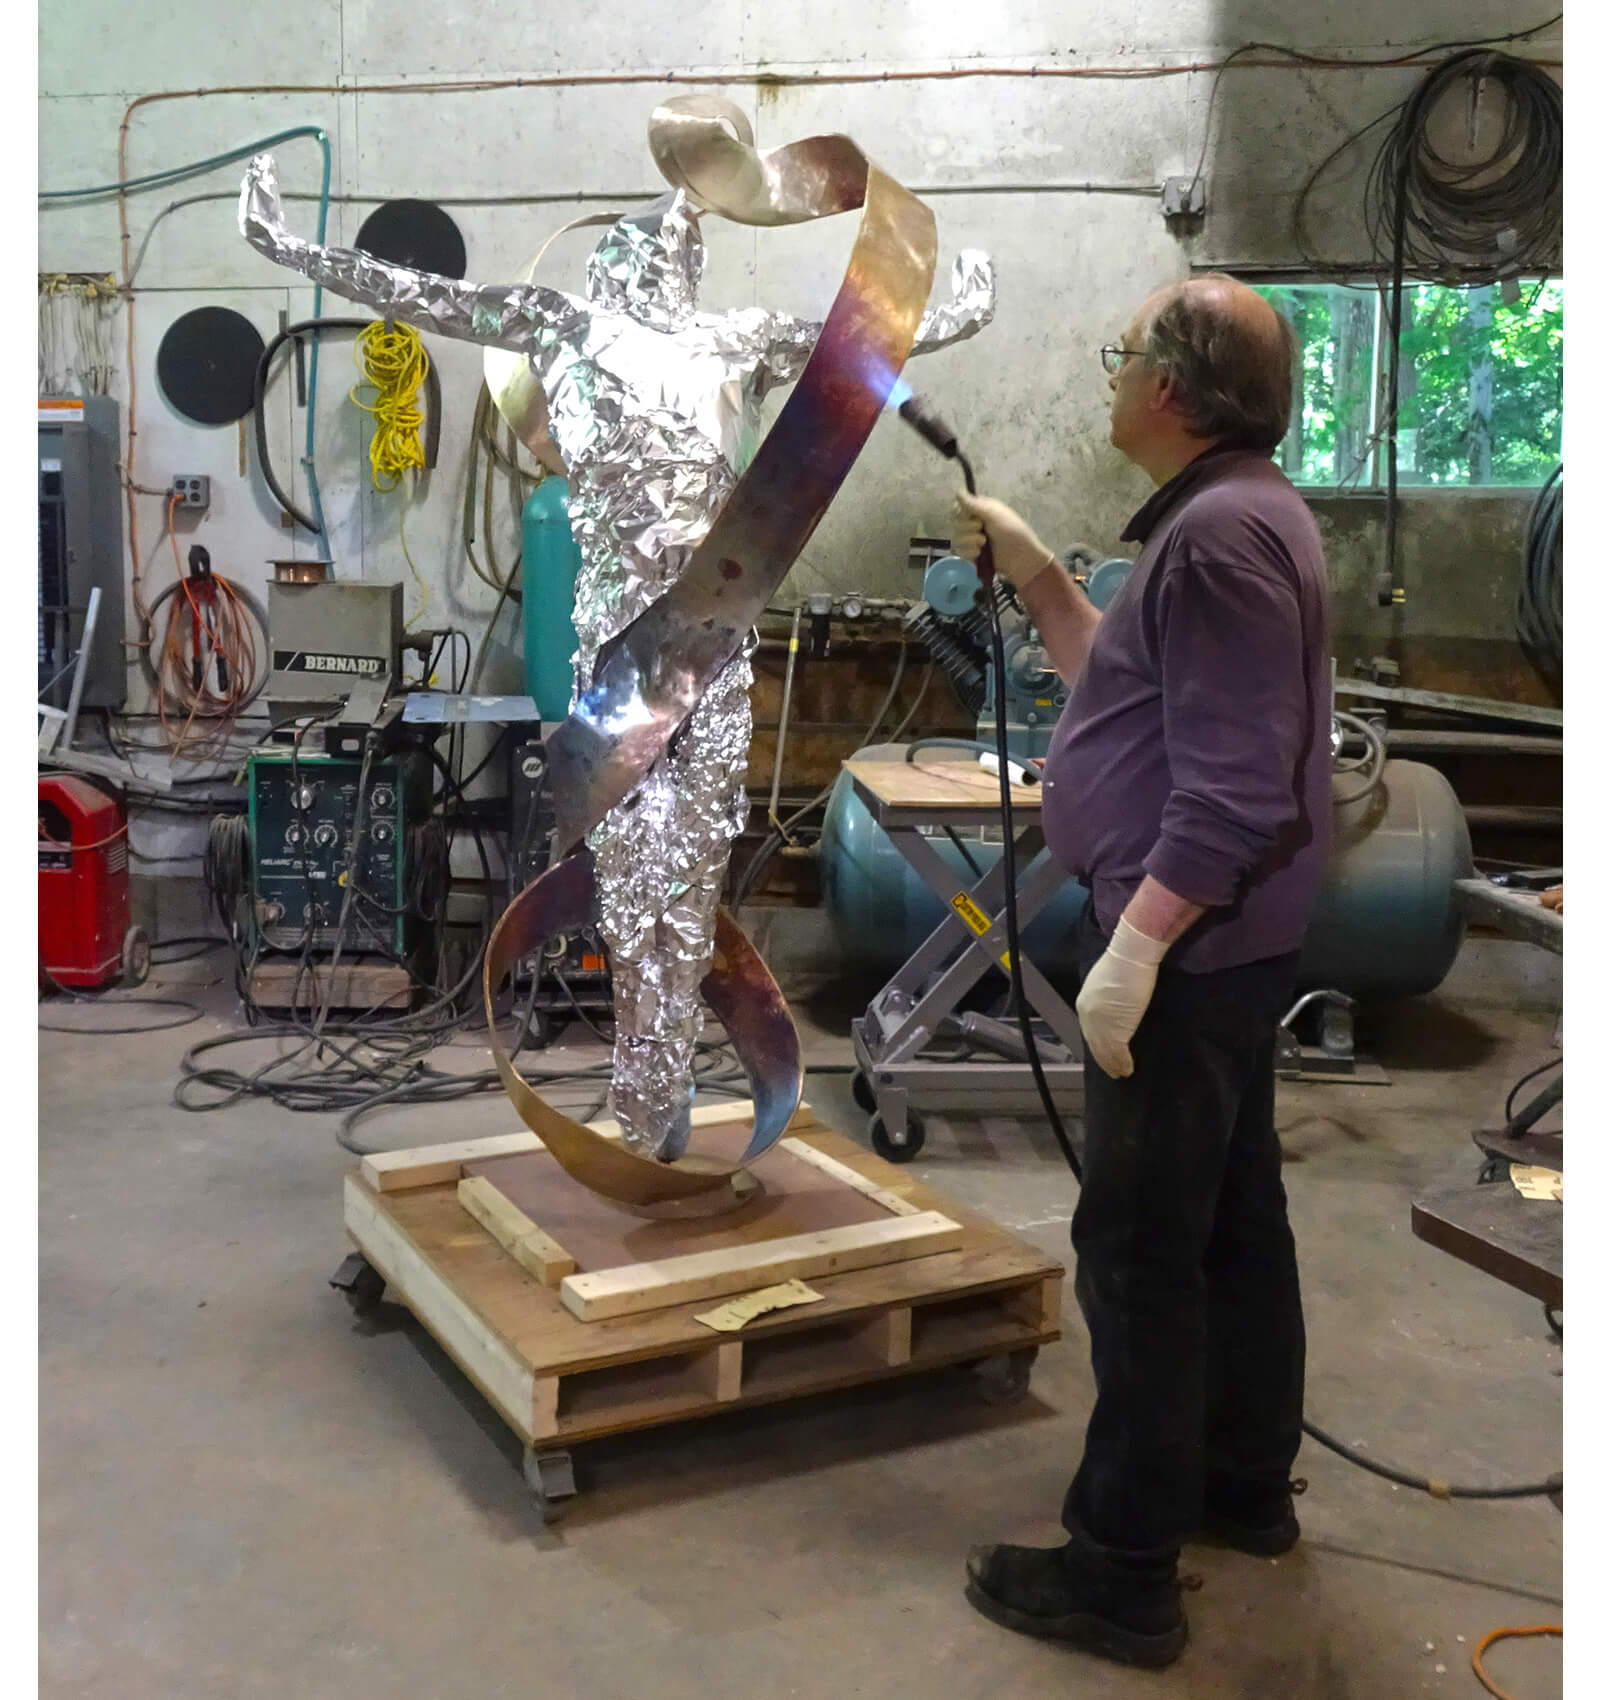 Sculptor Andrew DeVries heats the Mobius strip in preperation for the patina.